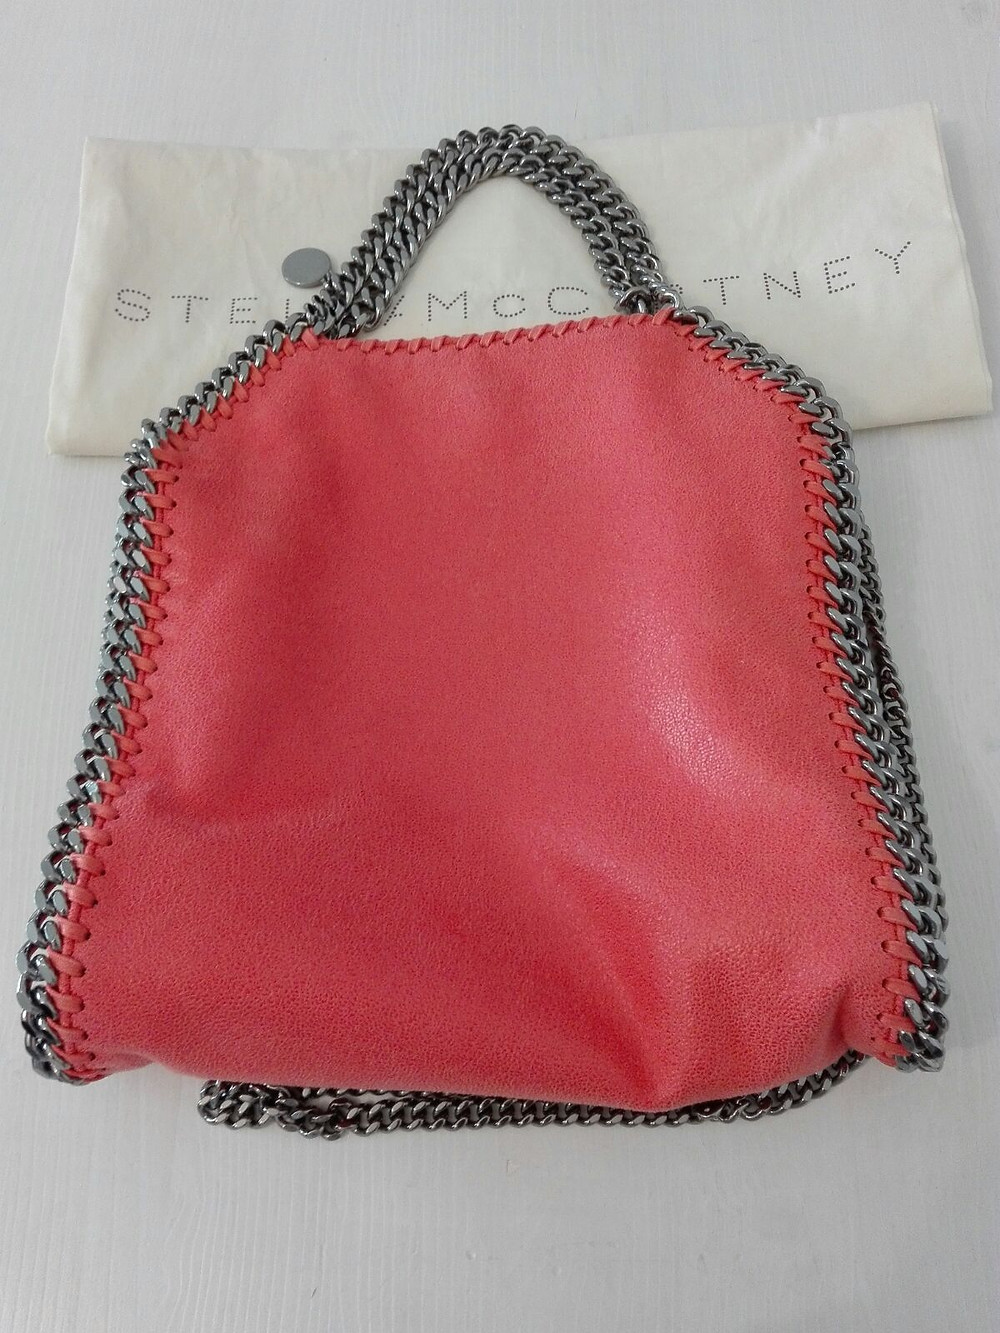 Borsa Stella McCartney corallo